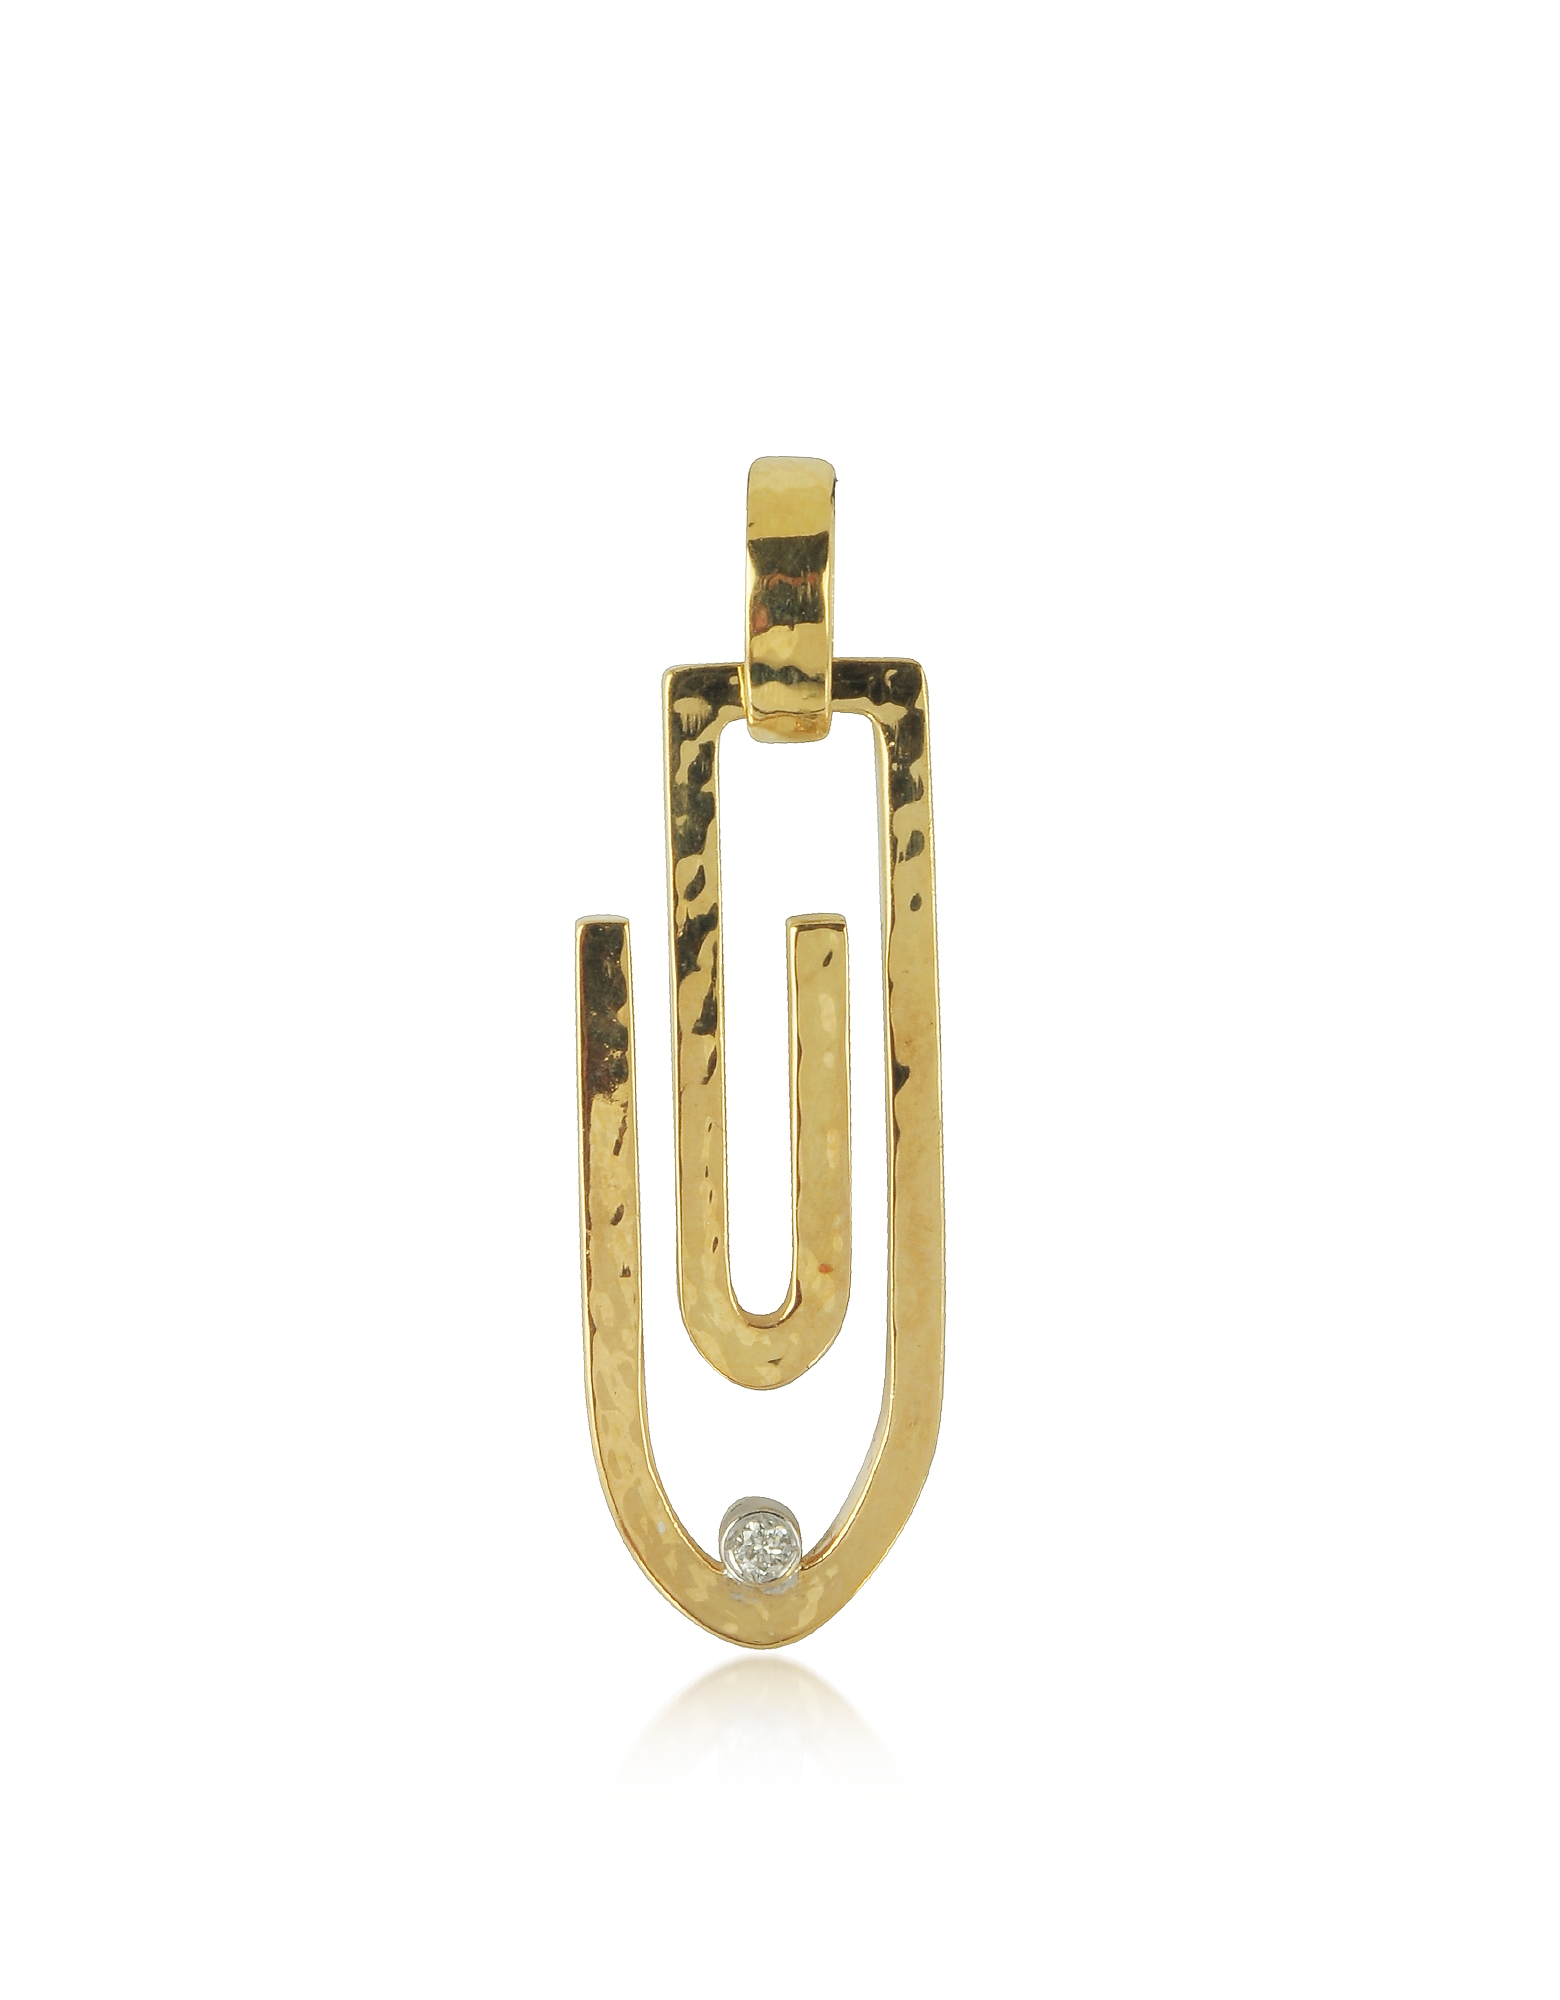 Torrini Designer Necklaces, Clips - 18K Yellow Gold Pendant with Diamond